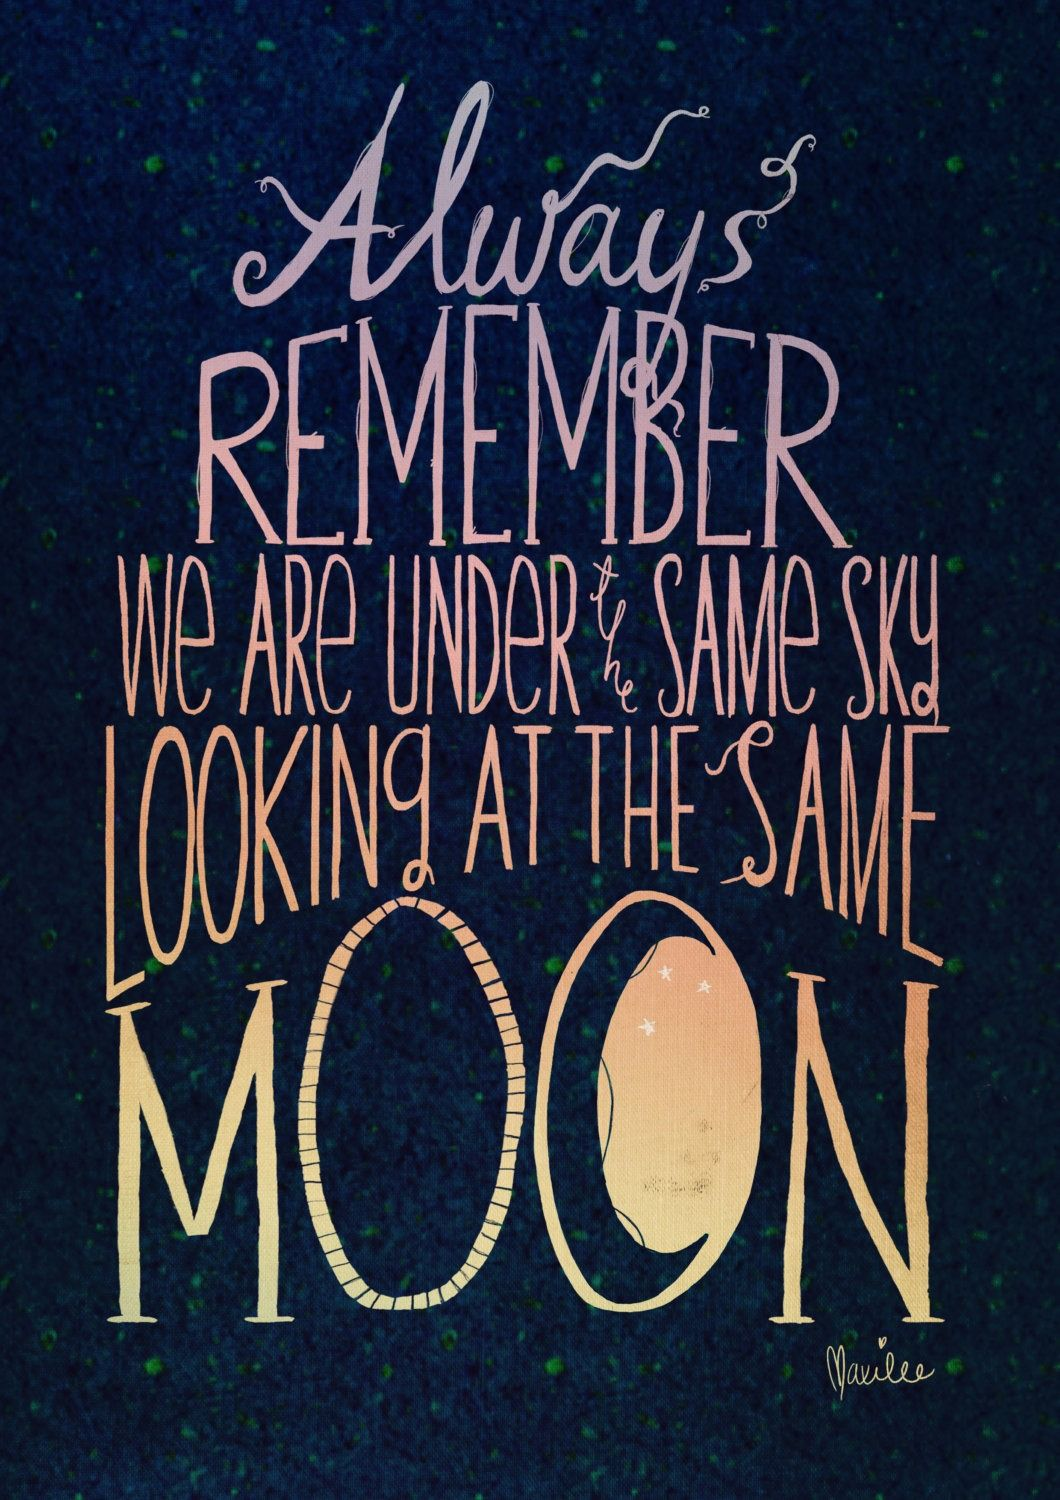 We see the same moon, even a thousand miles away.. | Infinite